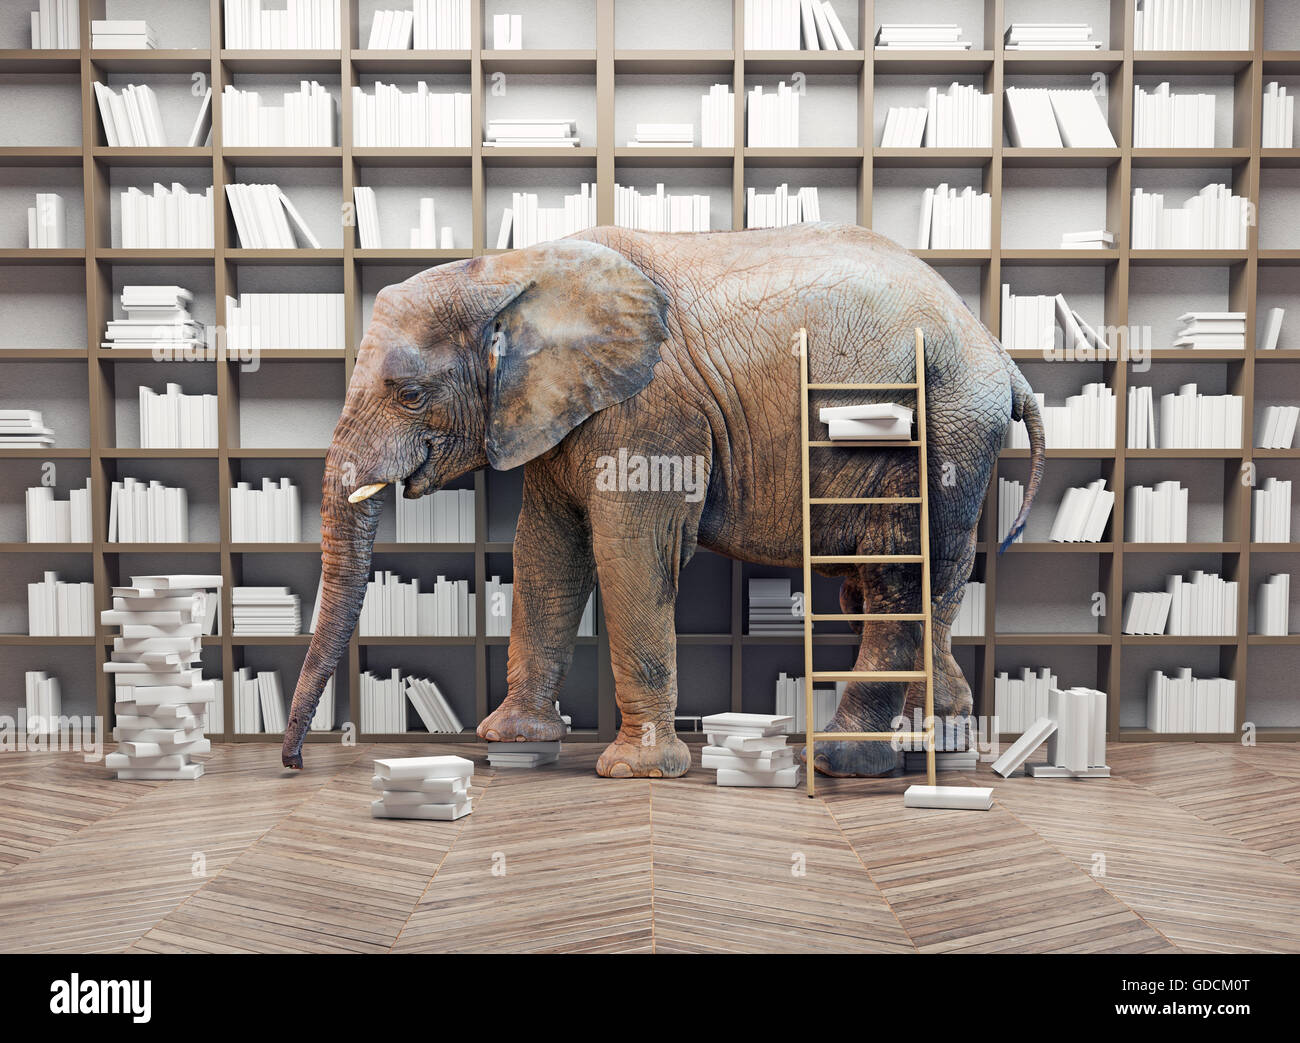 an elephant  in the room with book shelves. Creative concept - Stock Image